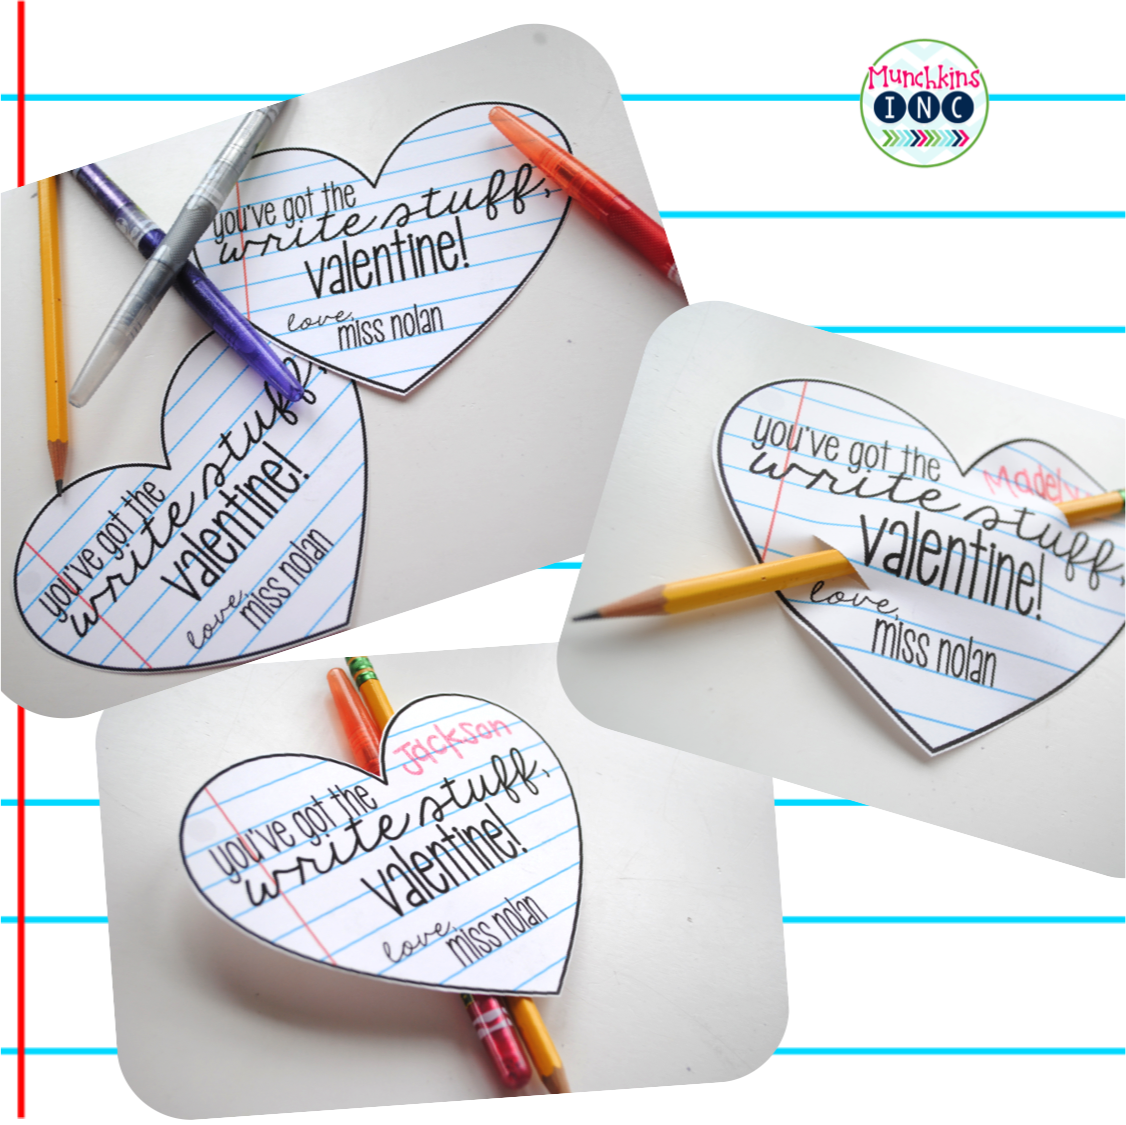 https://www.teacherspayteachers.com/Product/Youve-Got-the-WRITE-Stuff-Valentine-FREEBIE-1684440